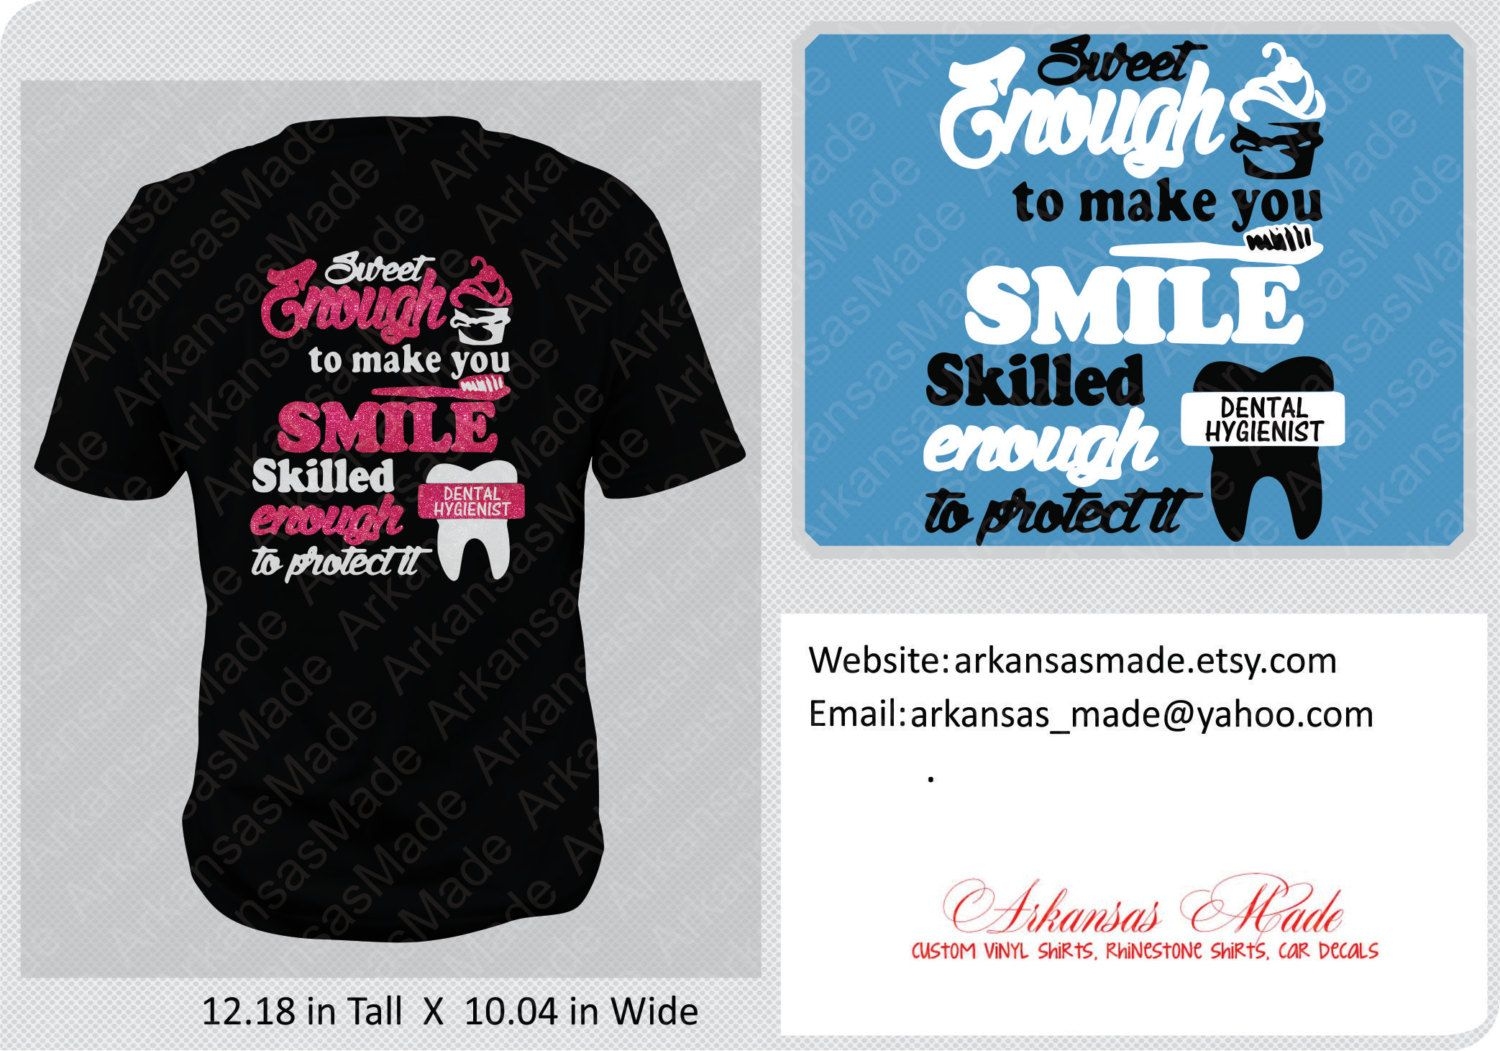 Sweet enough to make you smile, skilled enough to protect it, dental hygienist shirt, dental assistant shirt, dental shirt,